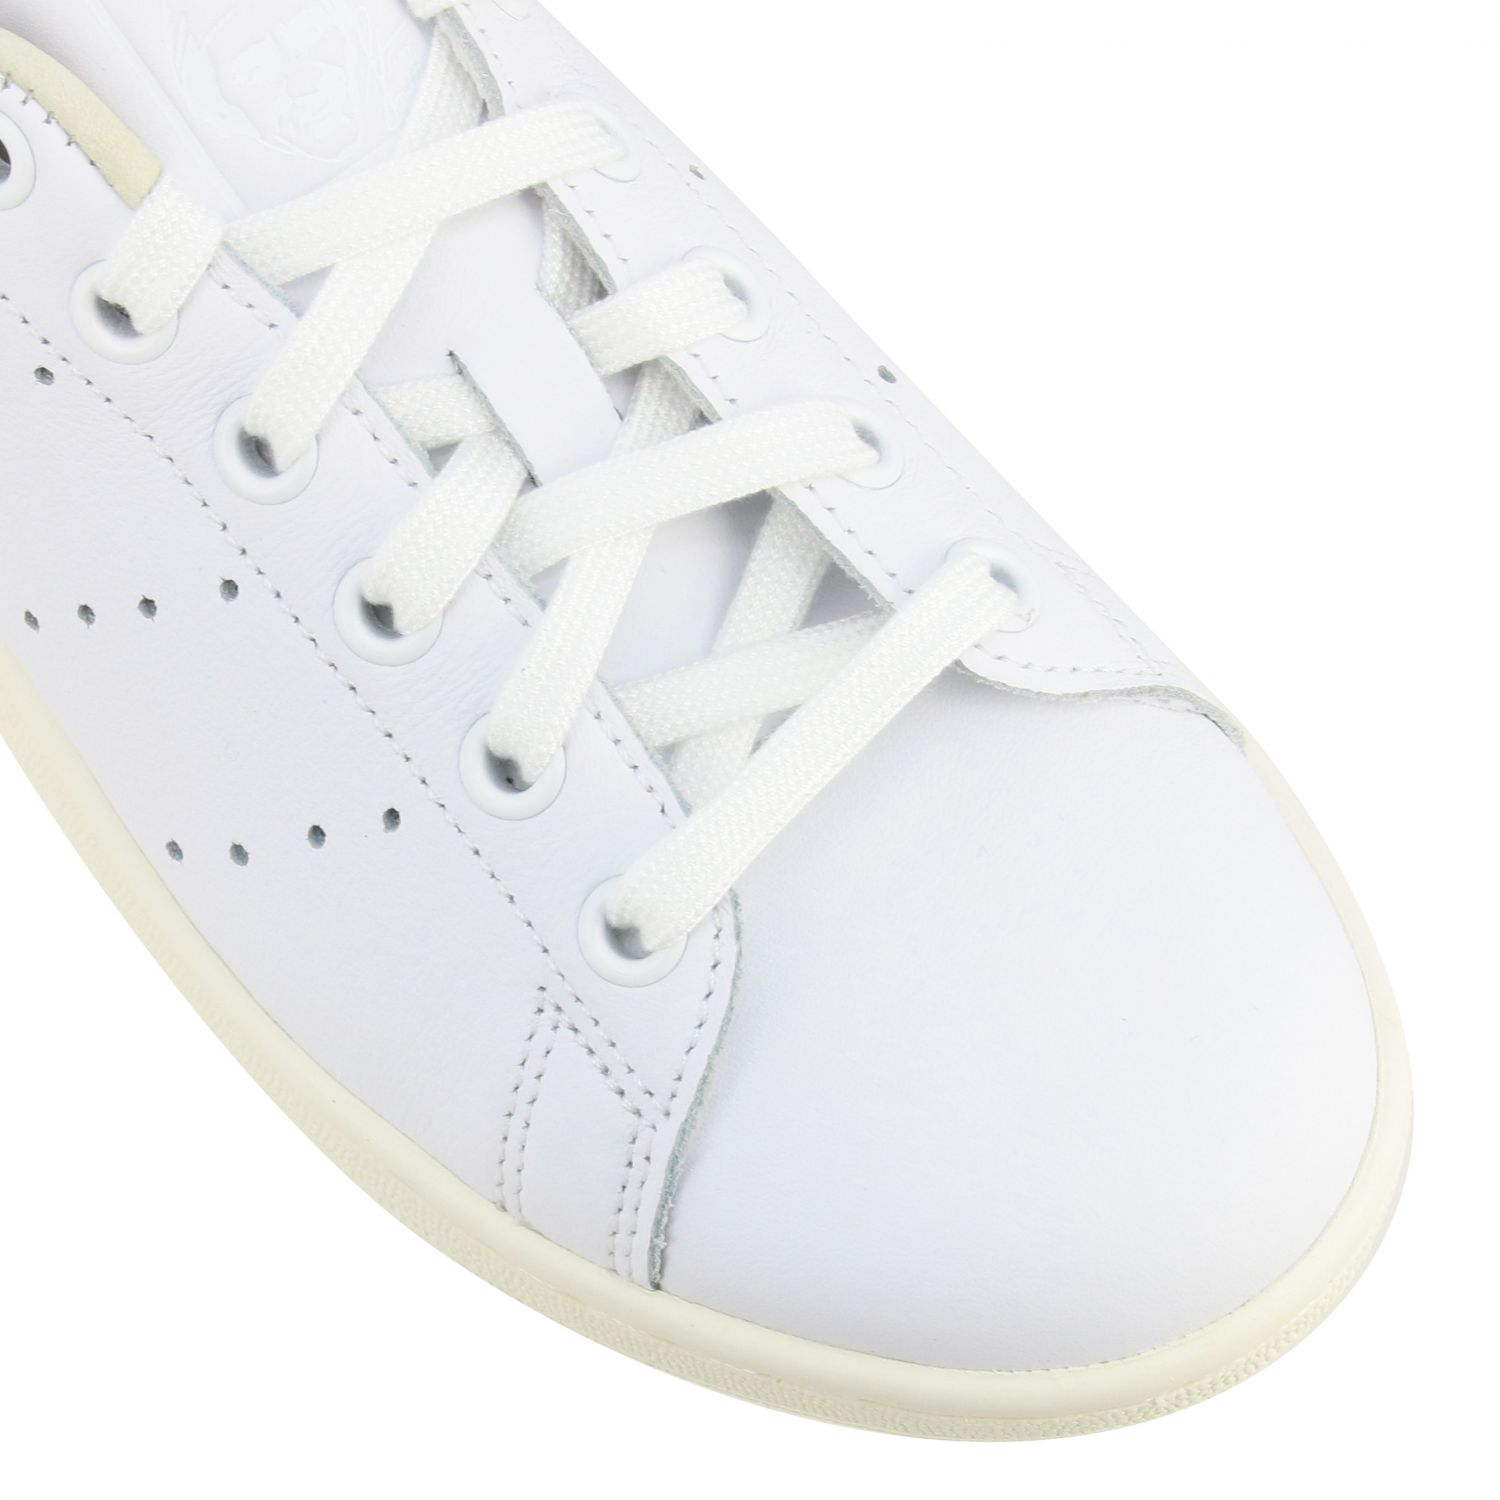 Sneakers Adidas Originals: Shoes women Adidas Originals white 4